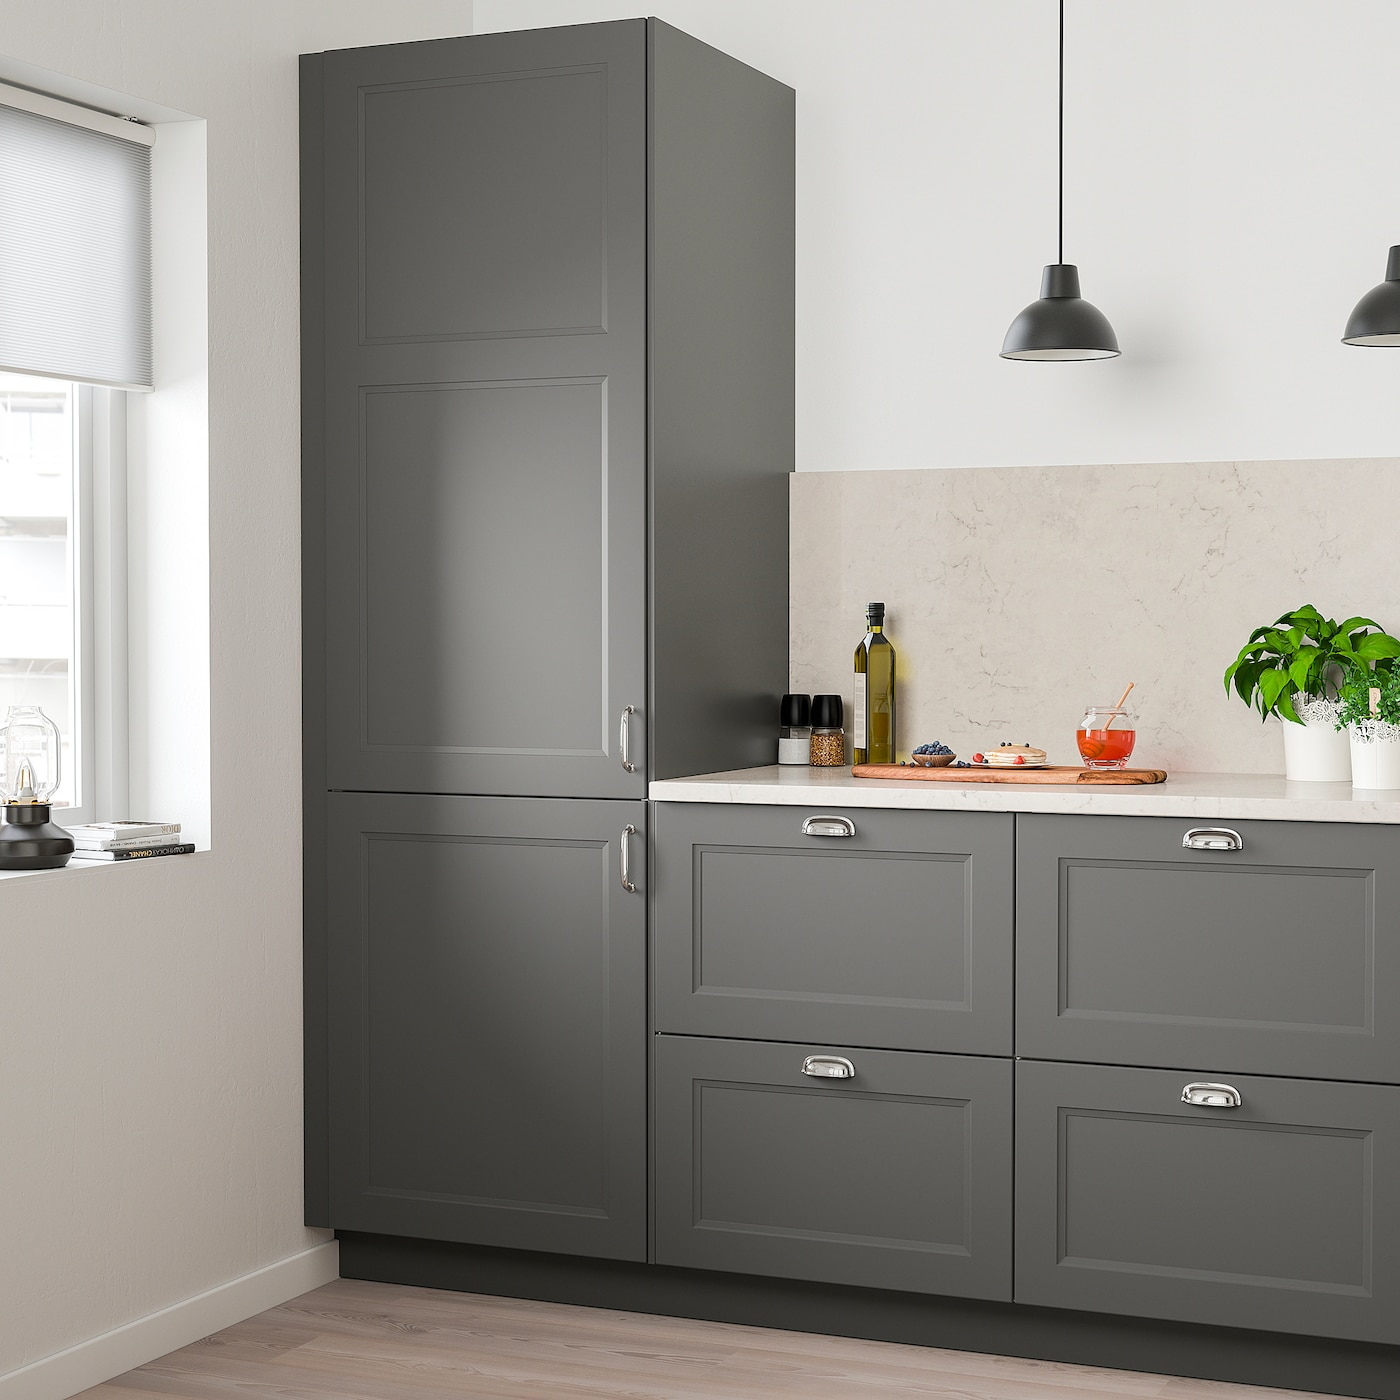 Axstad Door Dark Gray 21x20 Ikea